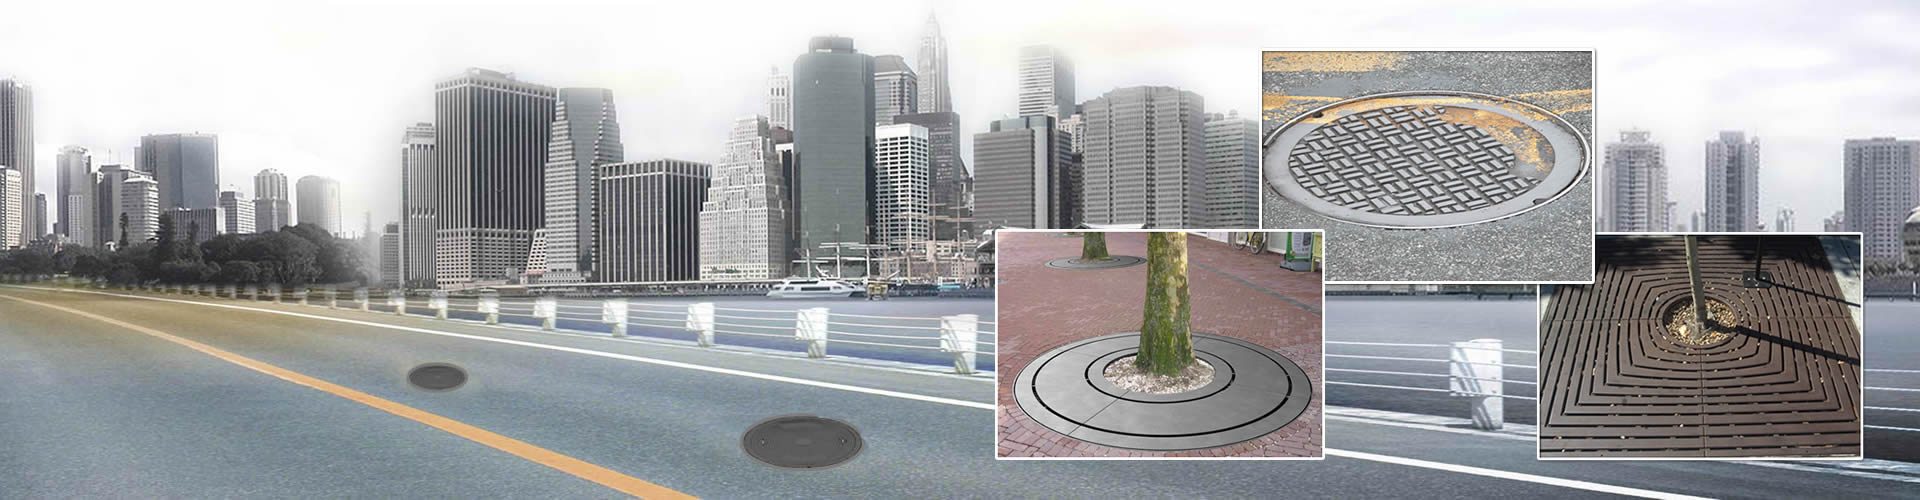 Two cast iron manhole covers are on the city road, a manhole cover and two tree gratings are embedded in the picture.